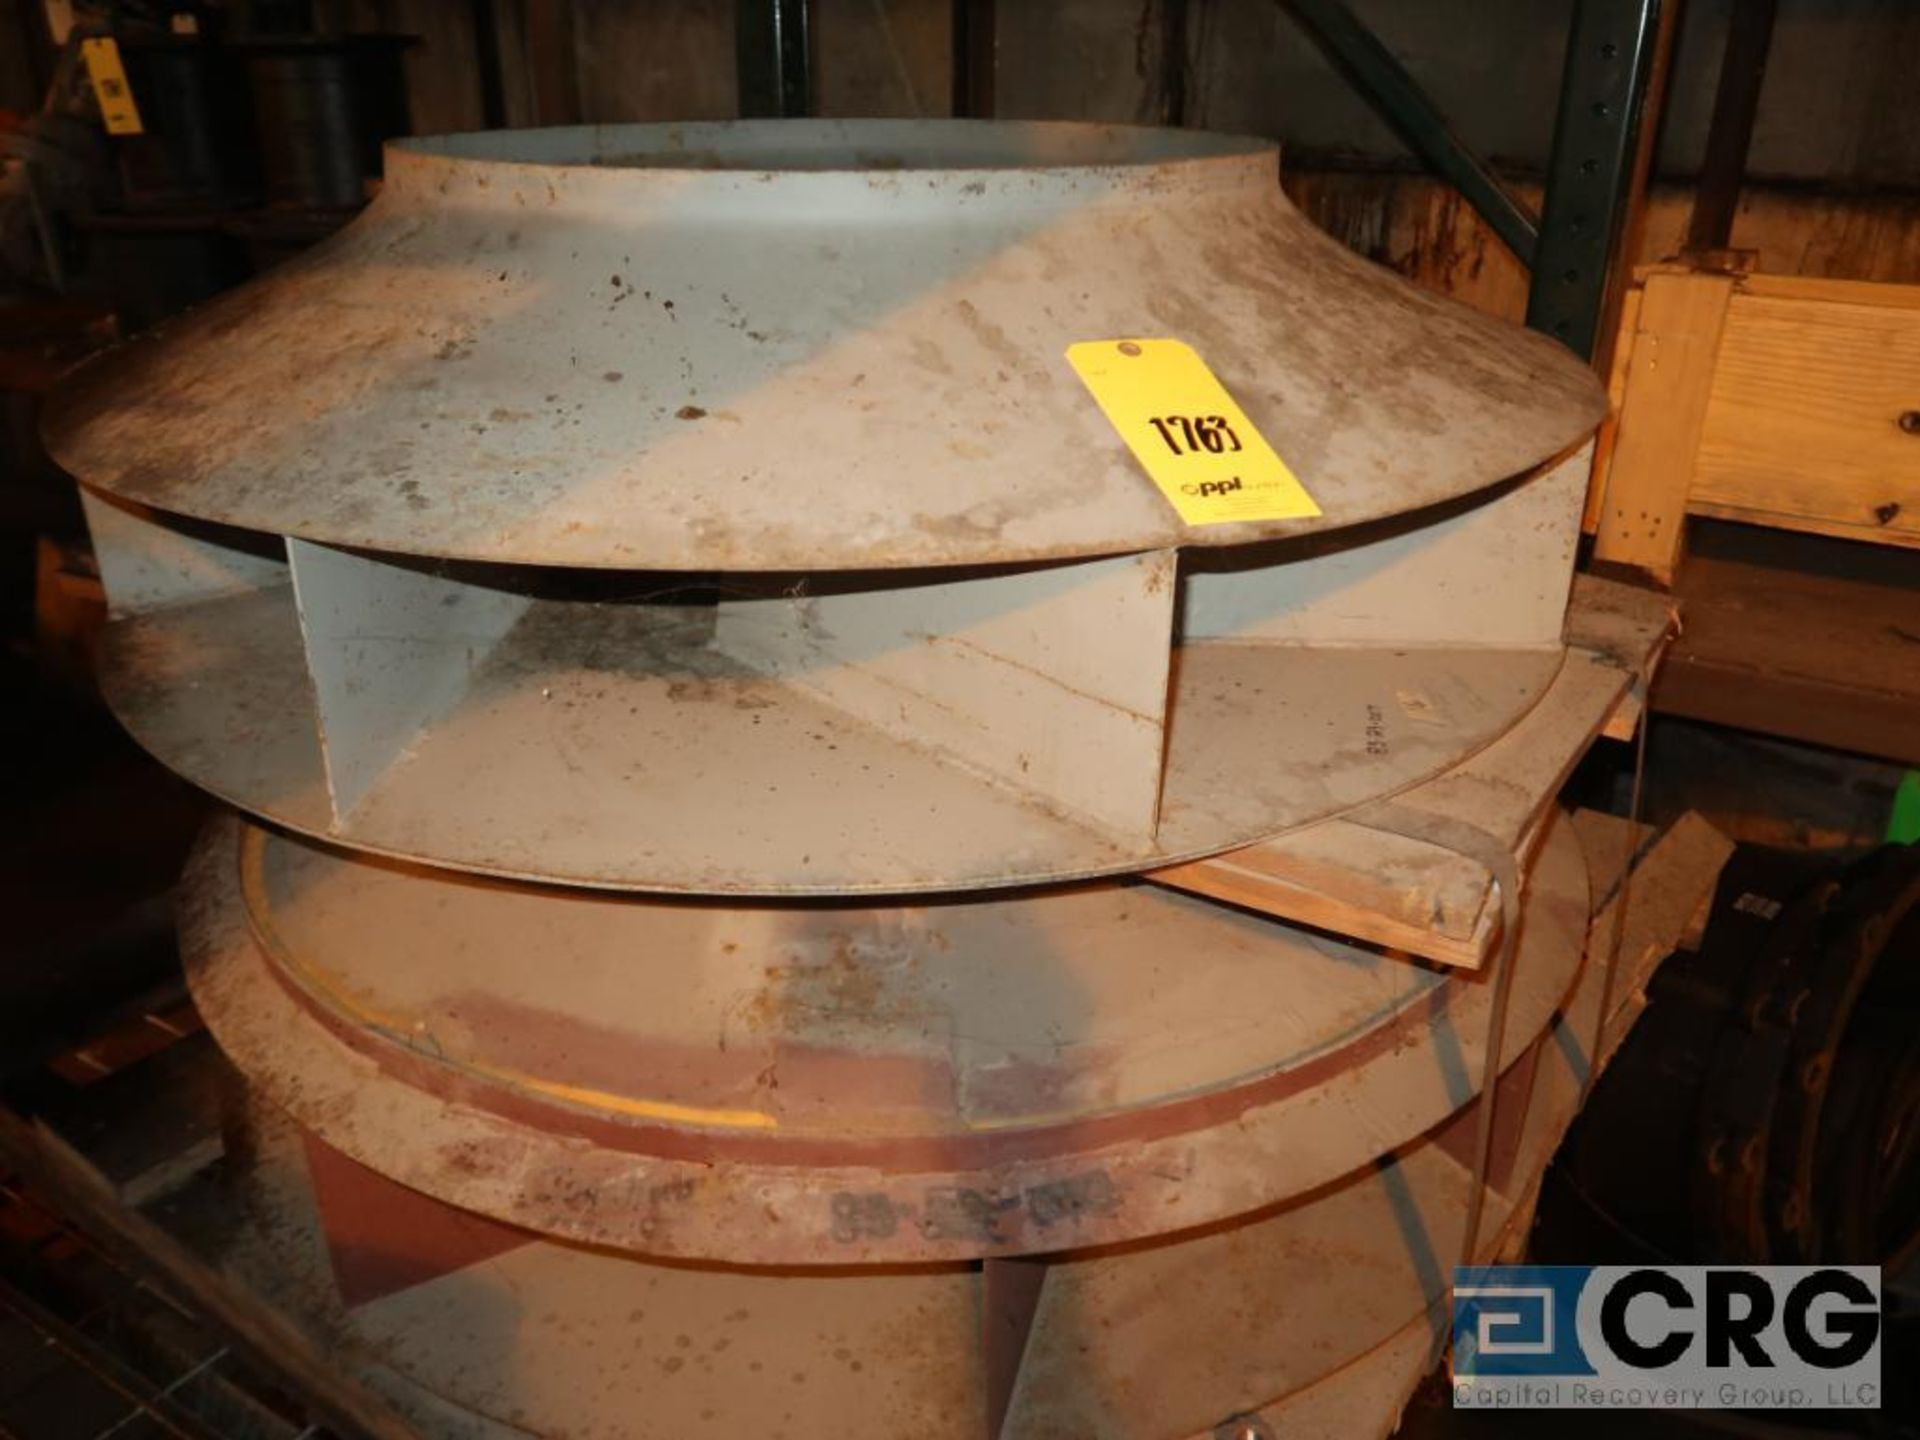 Lot of assorted parts including expansion joint, valves, fan blade, and rotors (Next Bay Cage Area) - Image 12 of 15